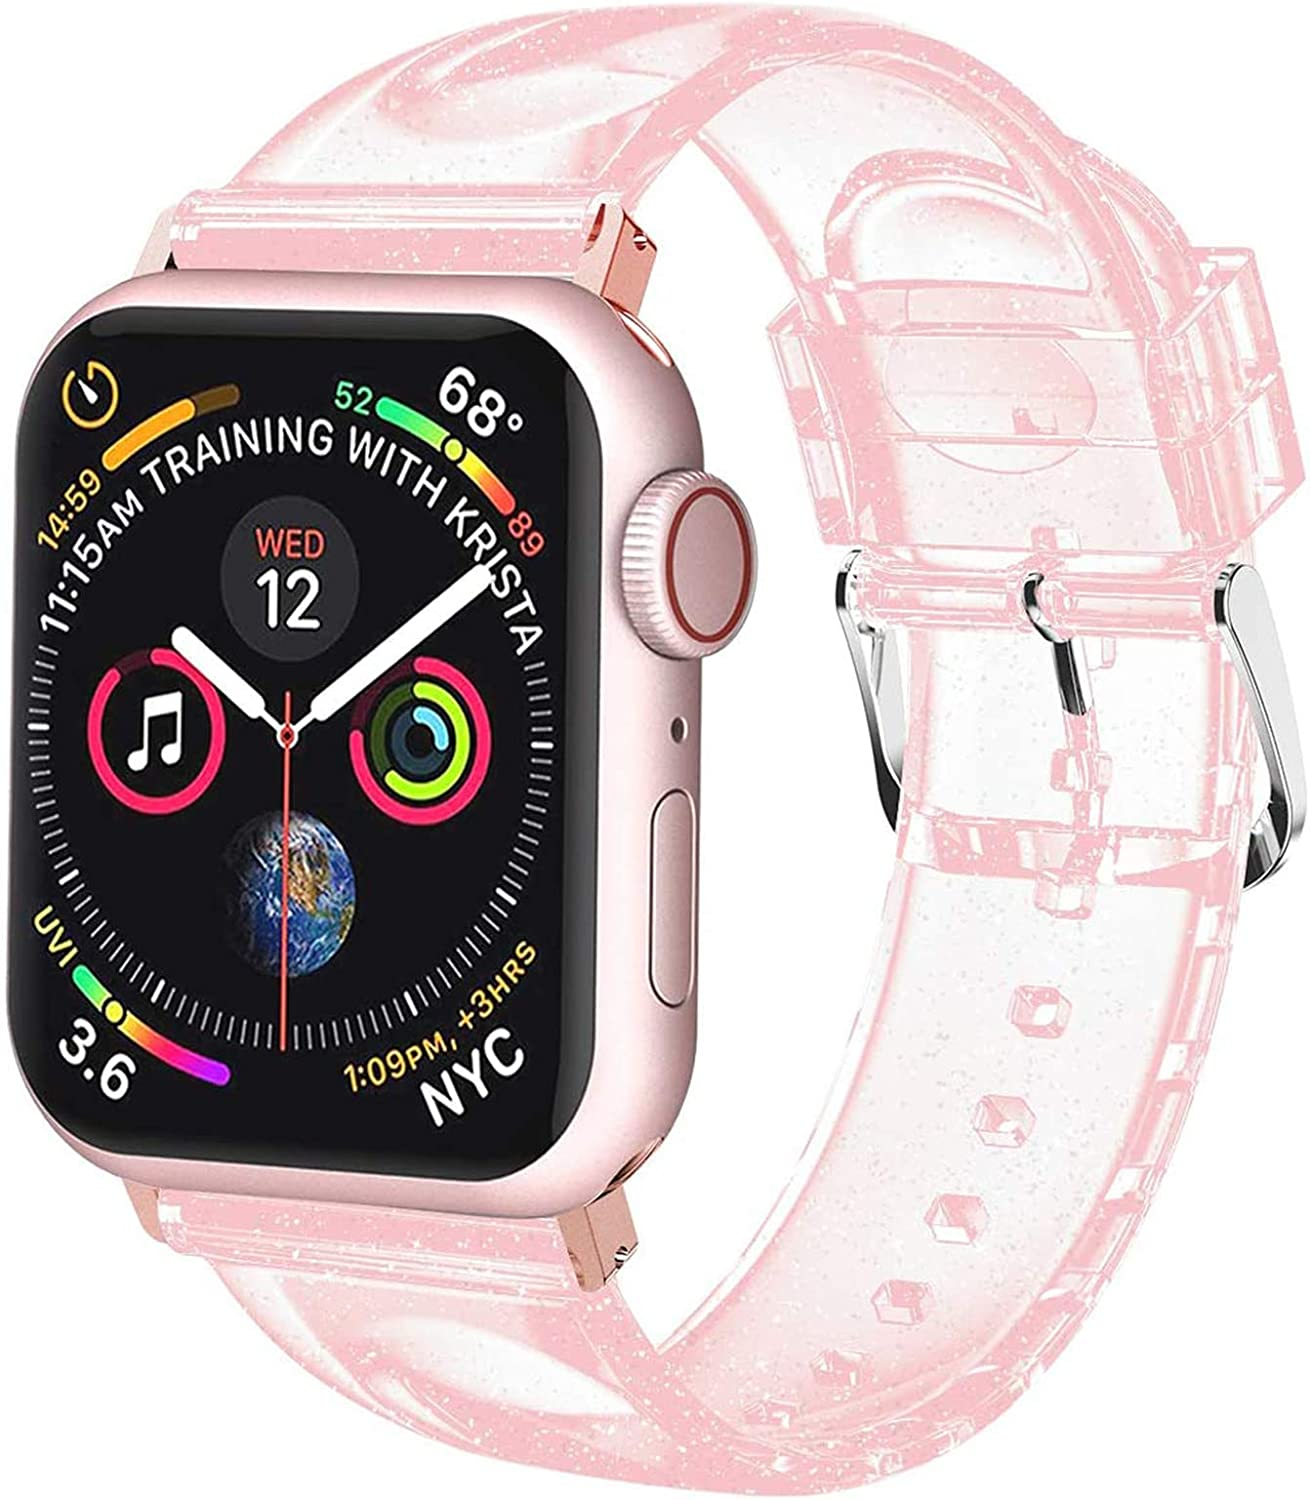 iiteeology Compatible with Apple Watch Band 42mm 44mm, Women Glitter Soft Silicone Sports iWatch Band Strap for Apple Watch Series 6/5/4/3/2/1/SE (42mm 44mm Pink/Silver Band + Rose Gold Connector)